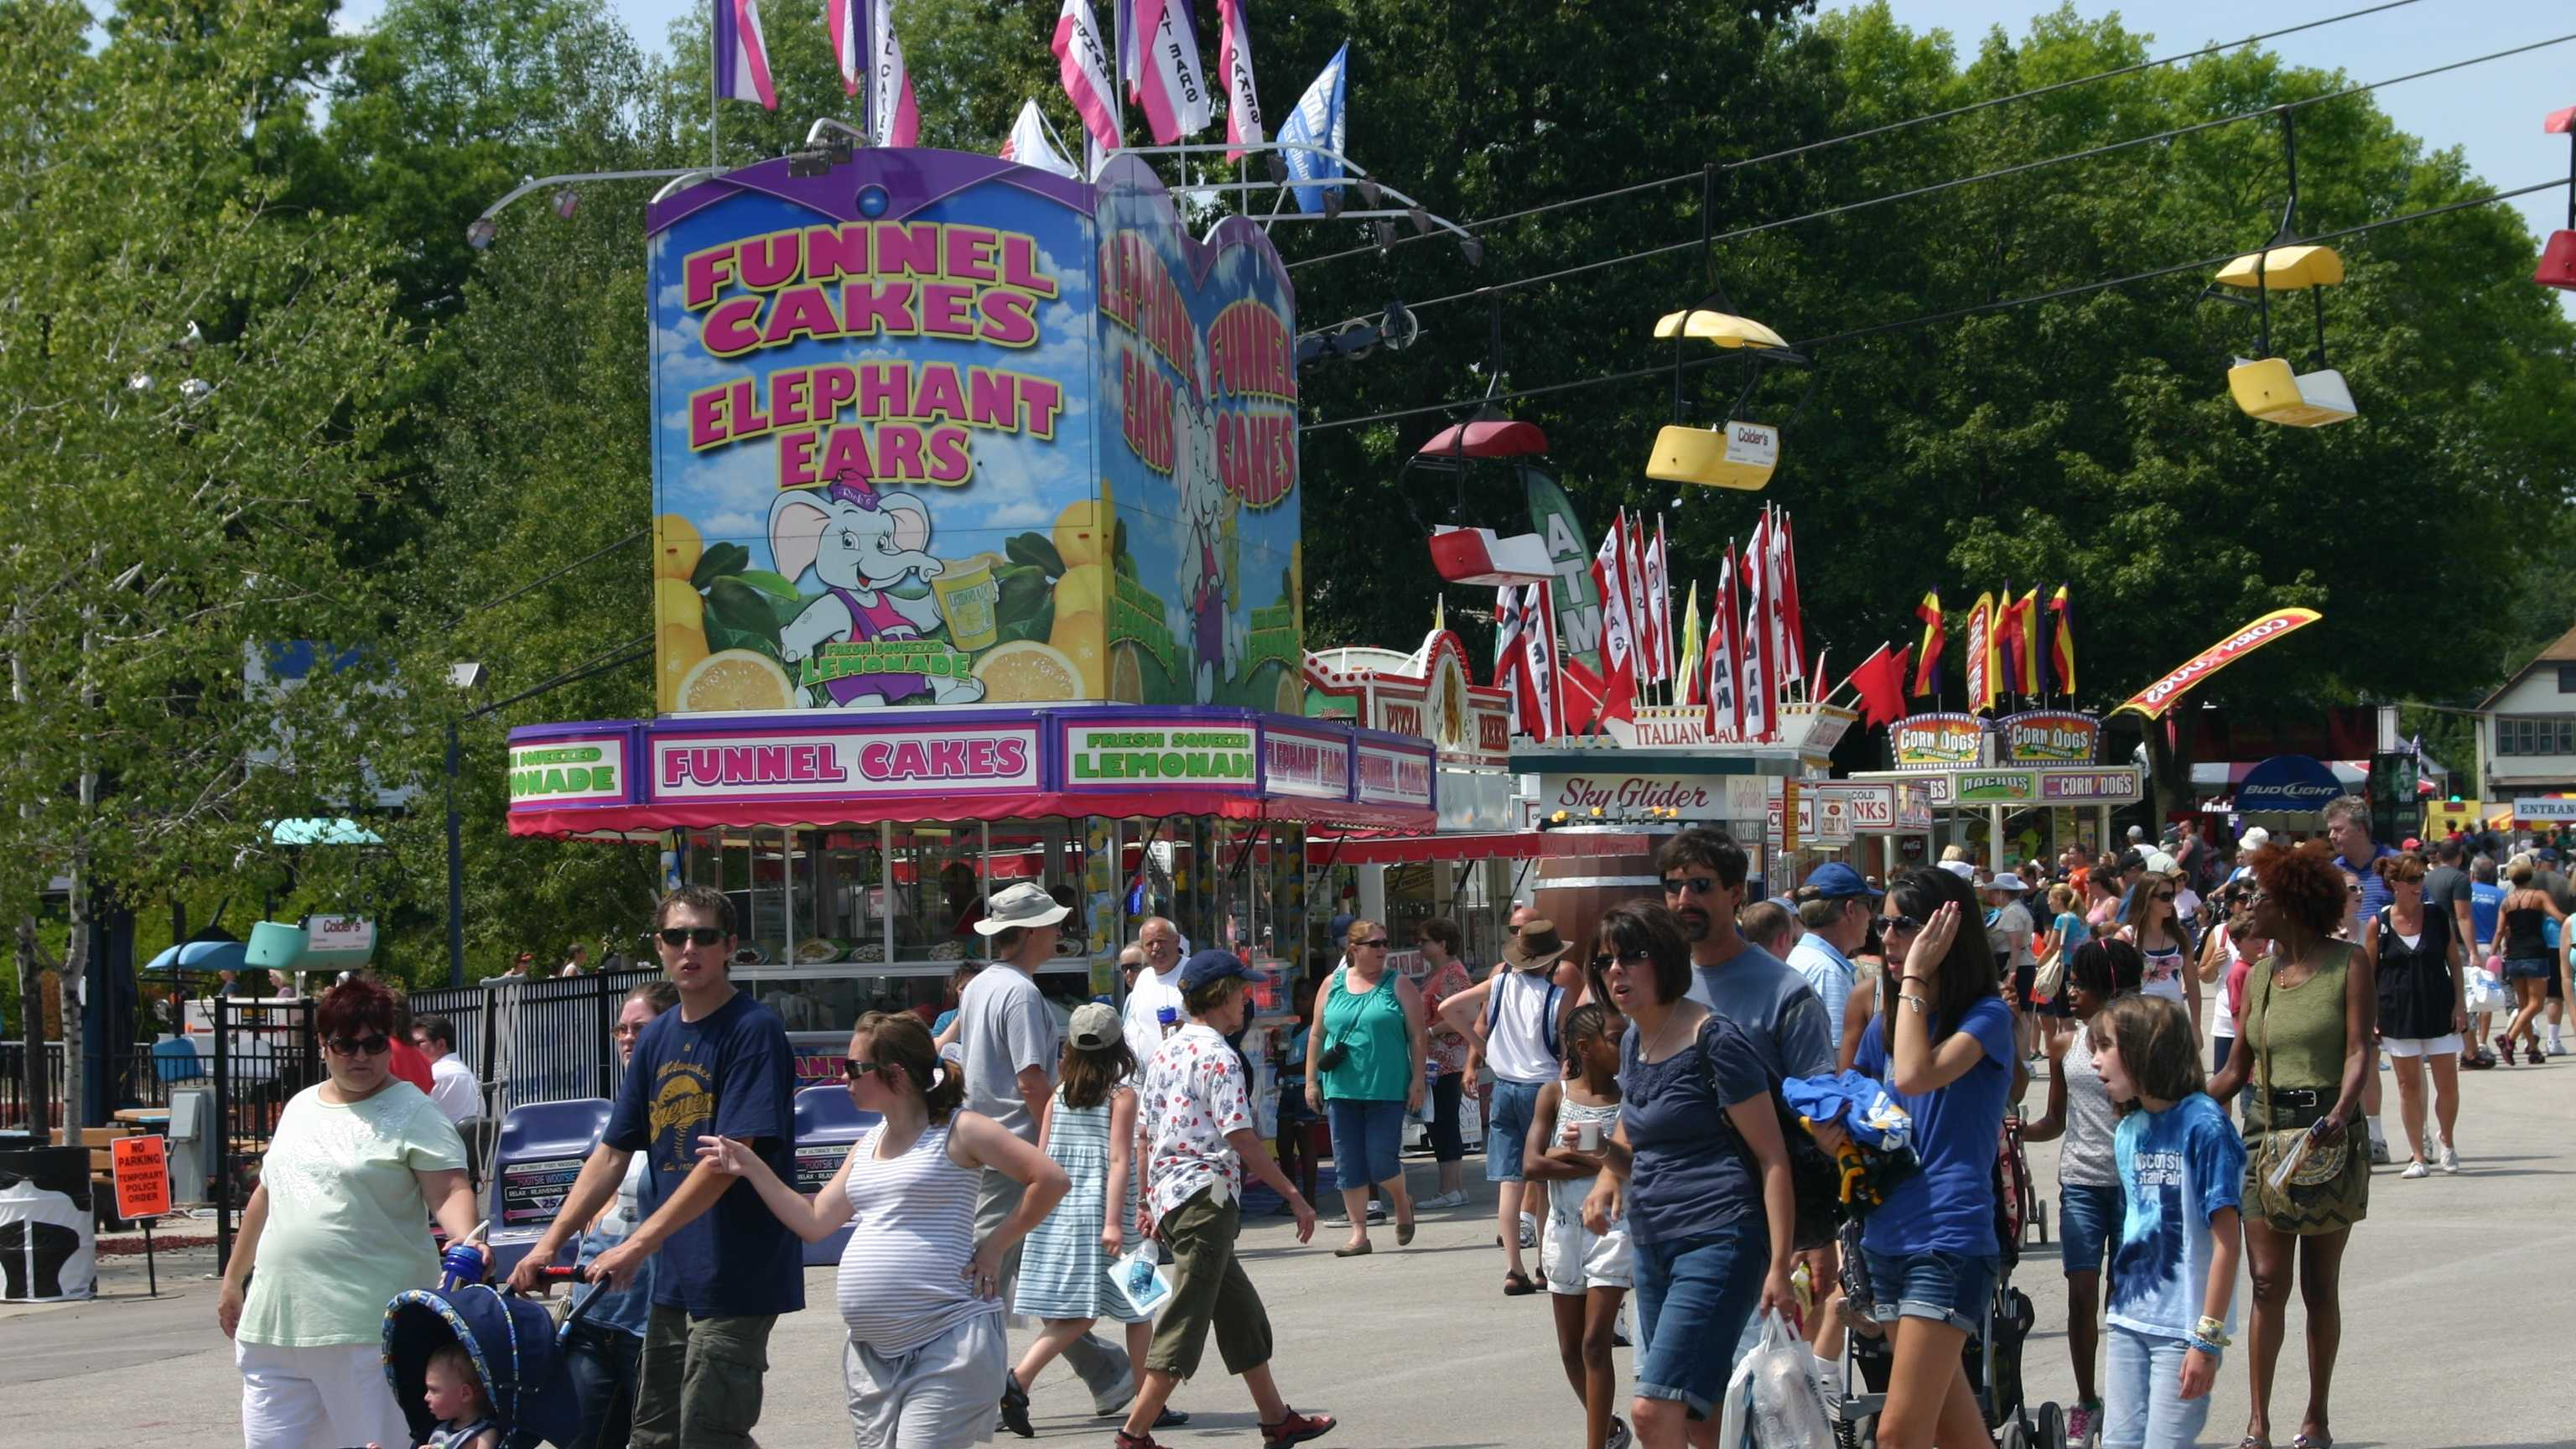 state fair crowd.JPG